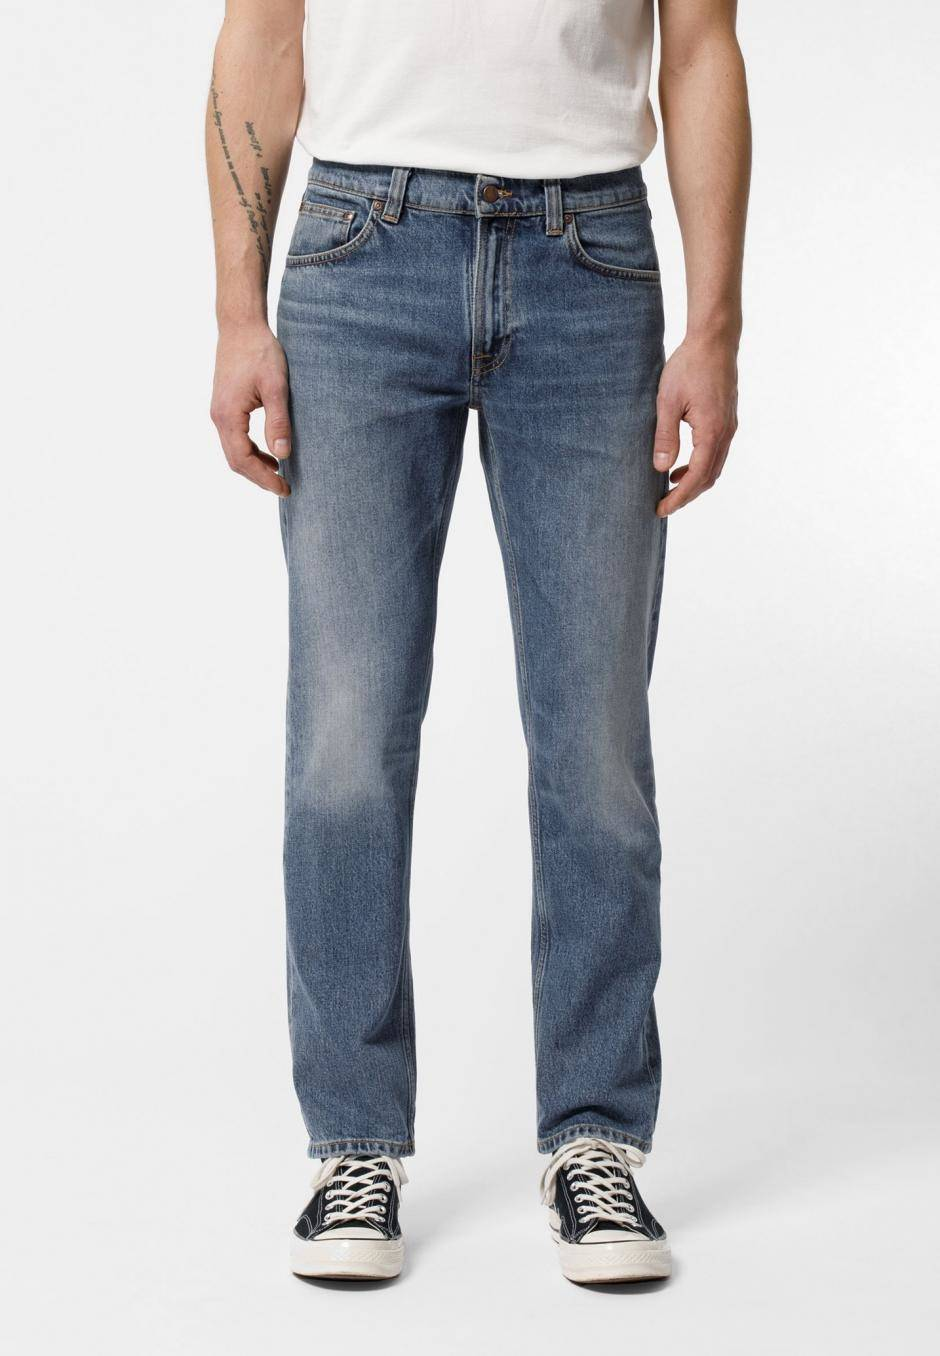 Nudie Jeans Gritty Jackson Old Gold